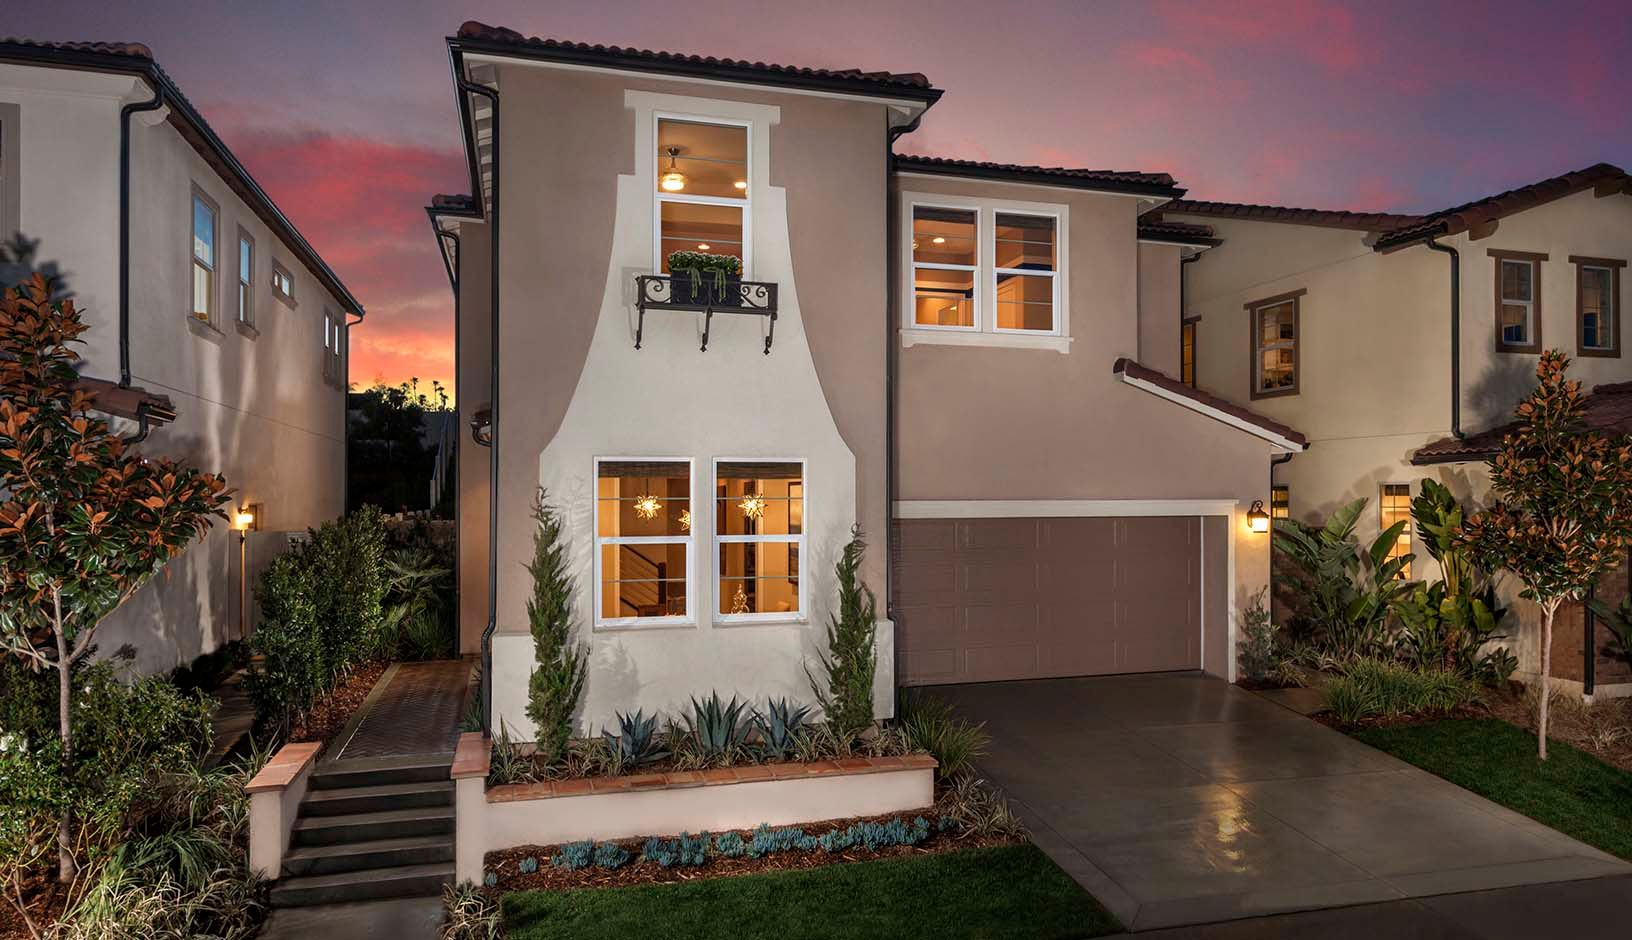 tri pointe homes terrassa villas residence 3 1246225 corona ca new home for sale homegain